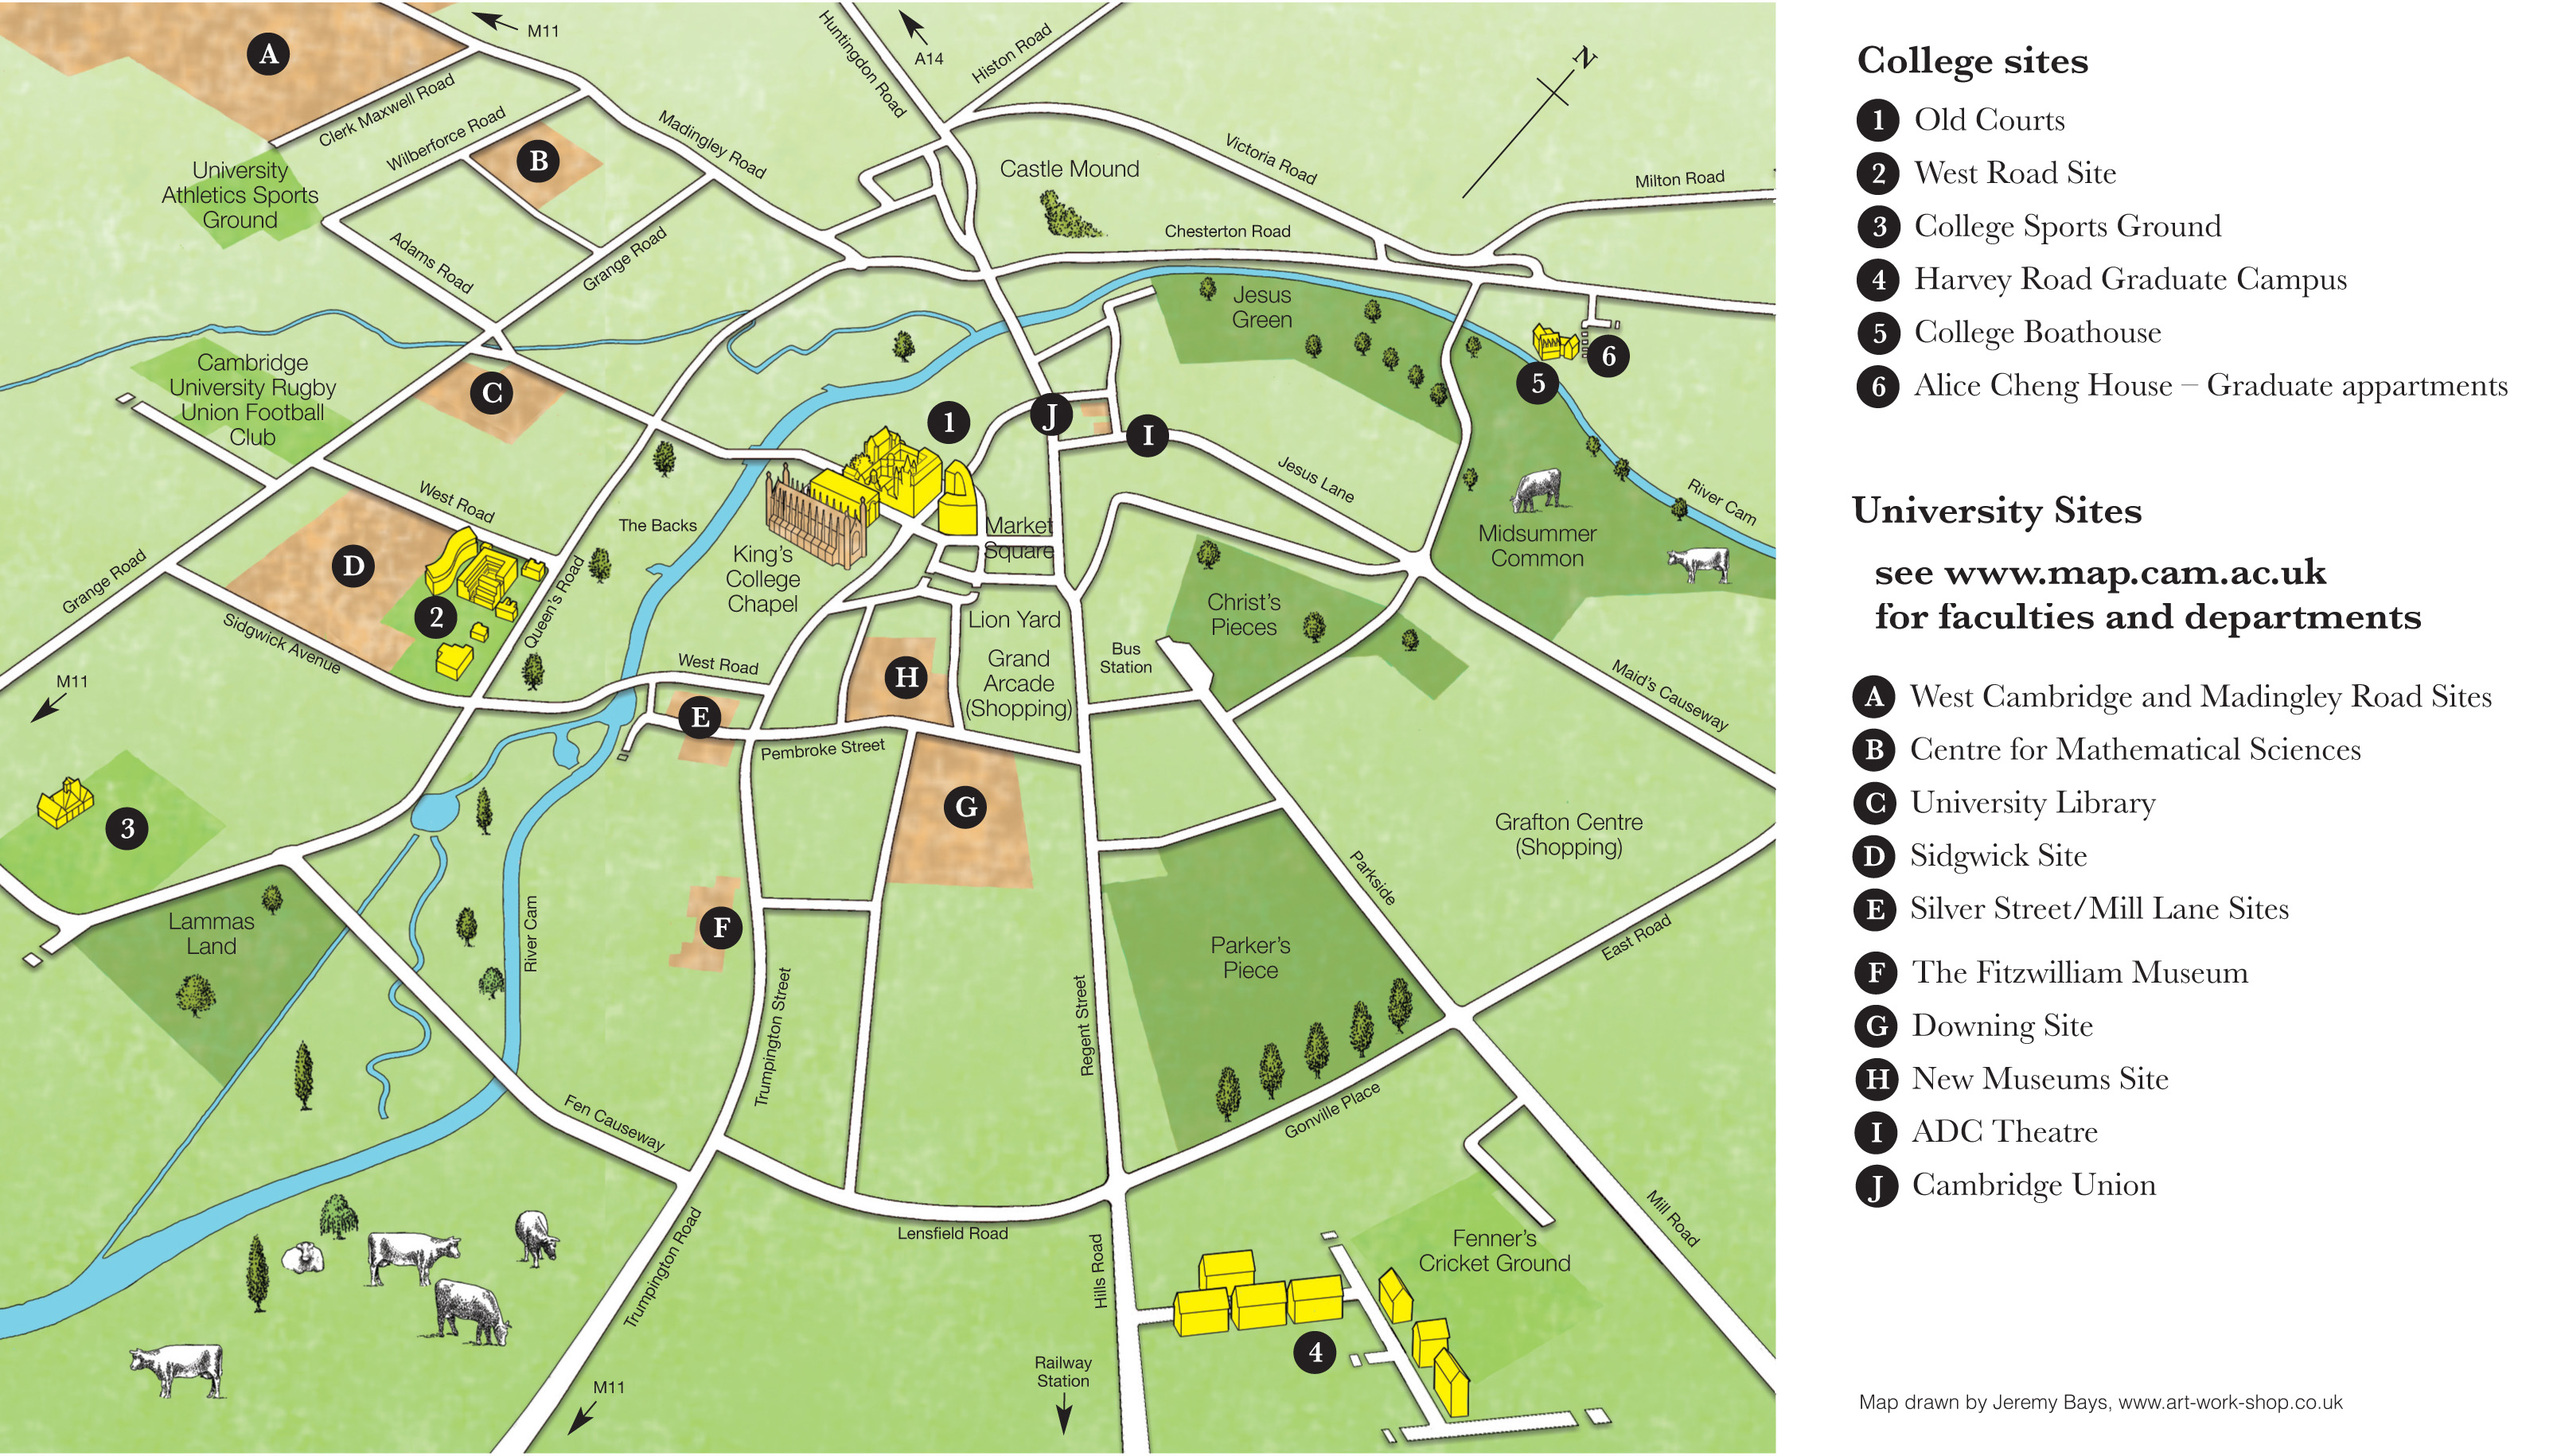 City Map University Sites Gonville Caius